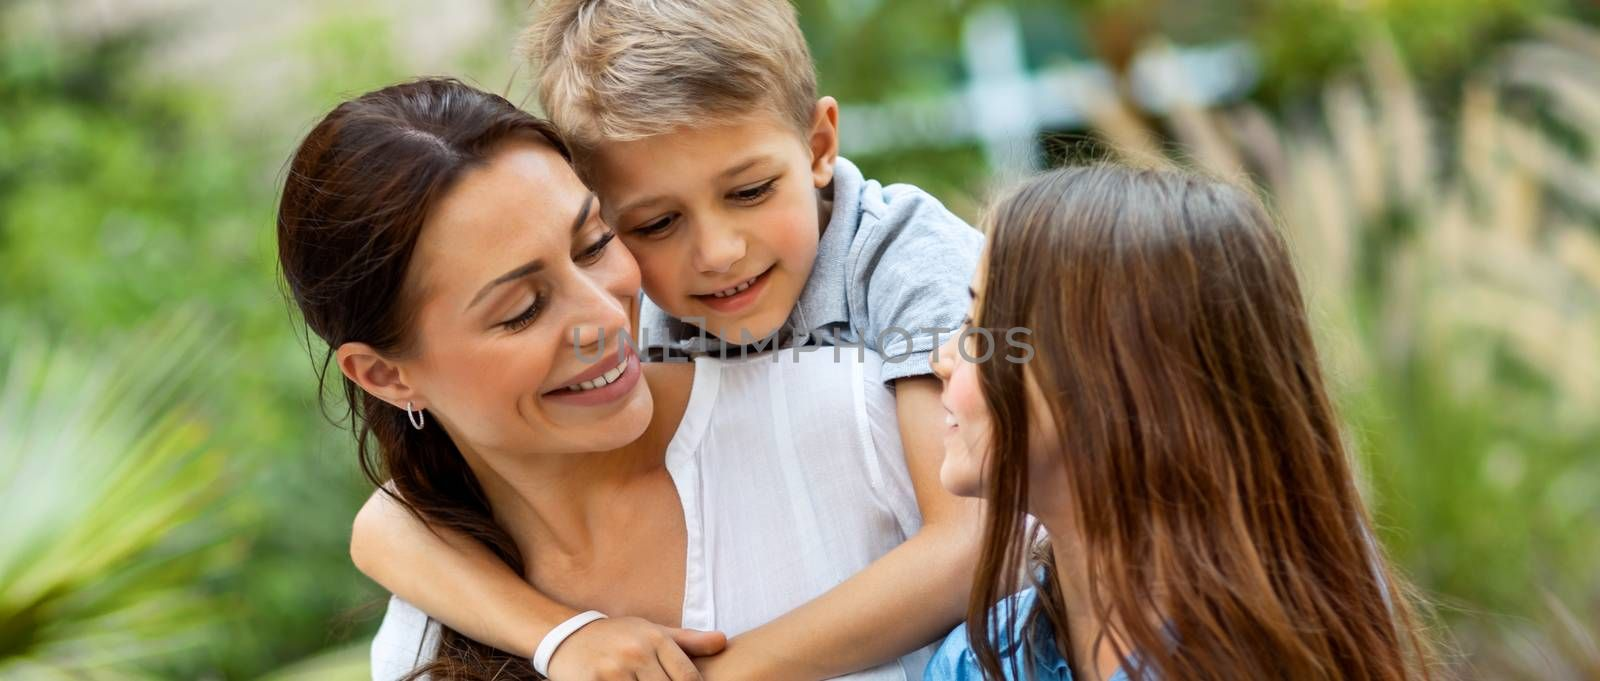 Portrait of a beautiful young mother with her two cute kids having fun outdoors, happy family with pleasure spending time together, enjoying summer holidays